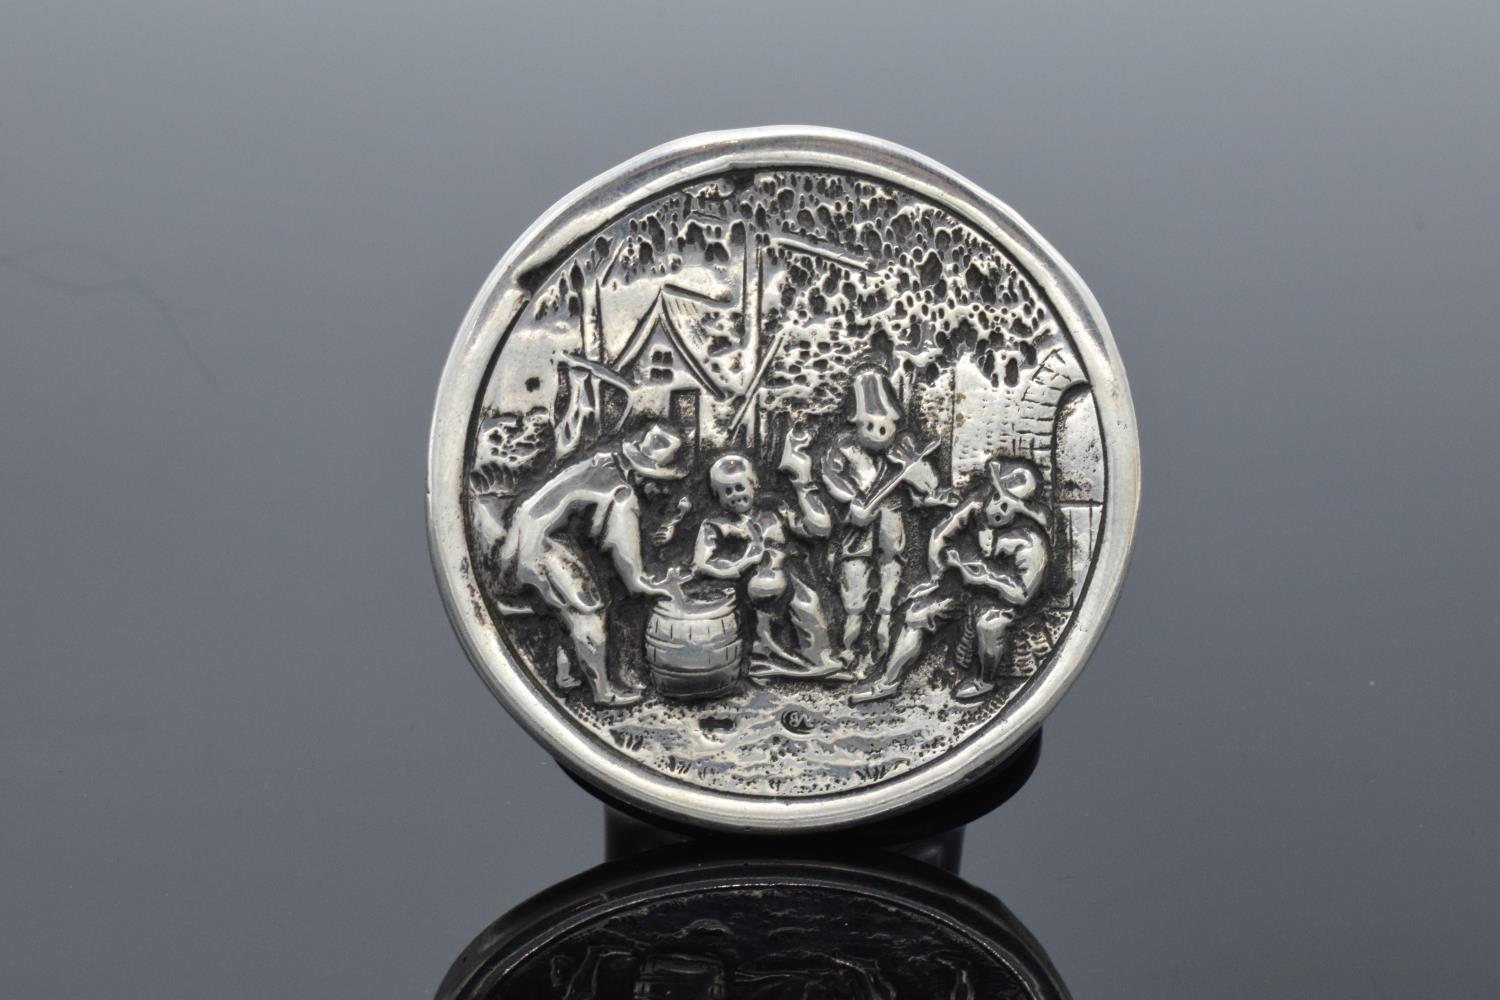 A late 19th/ early 20th century circular silver brooch depicting dutch style scenes with a base